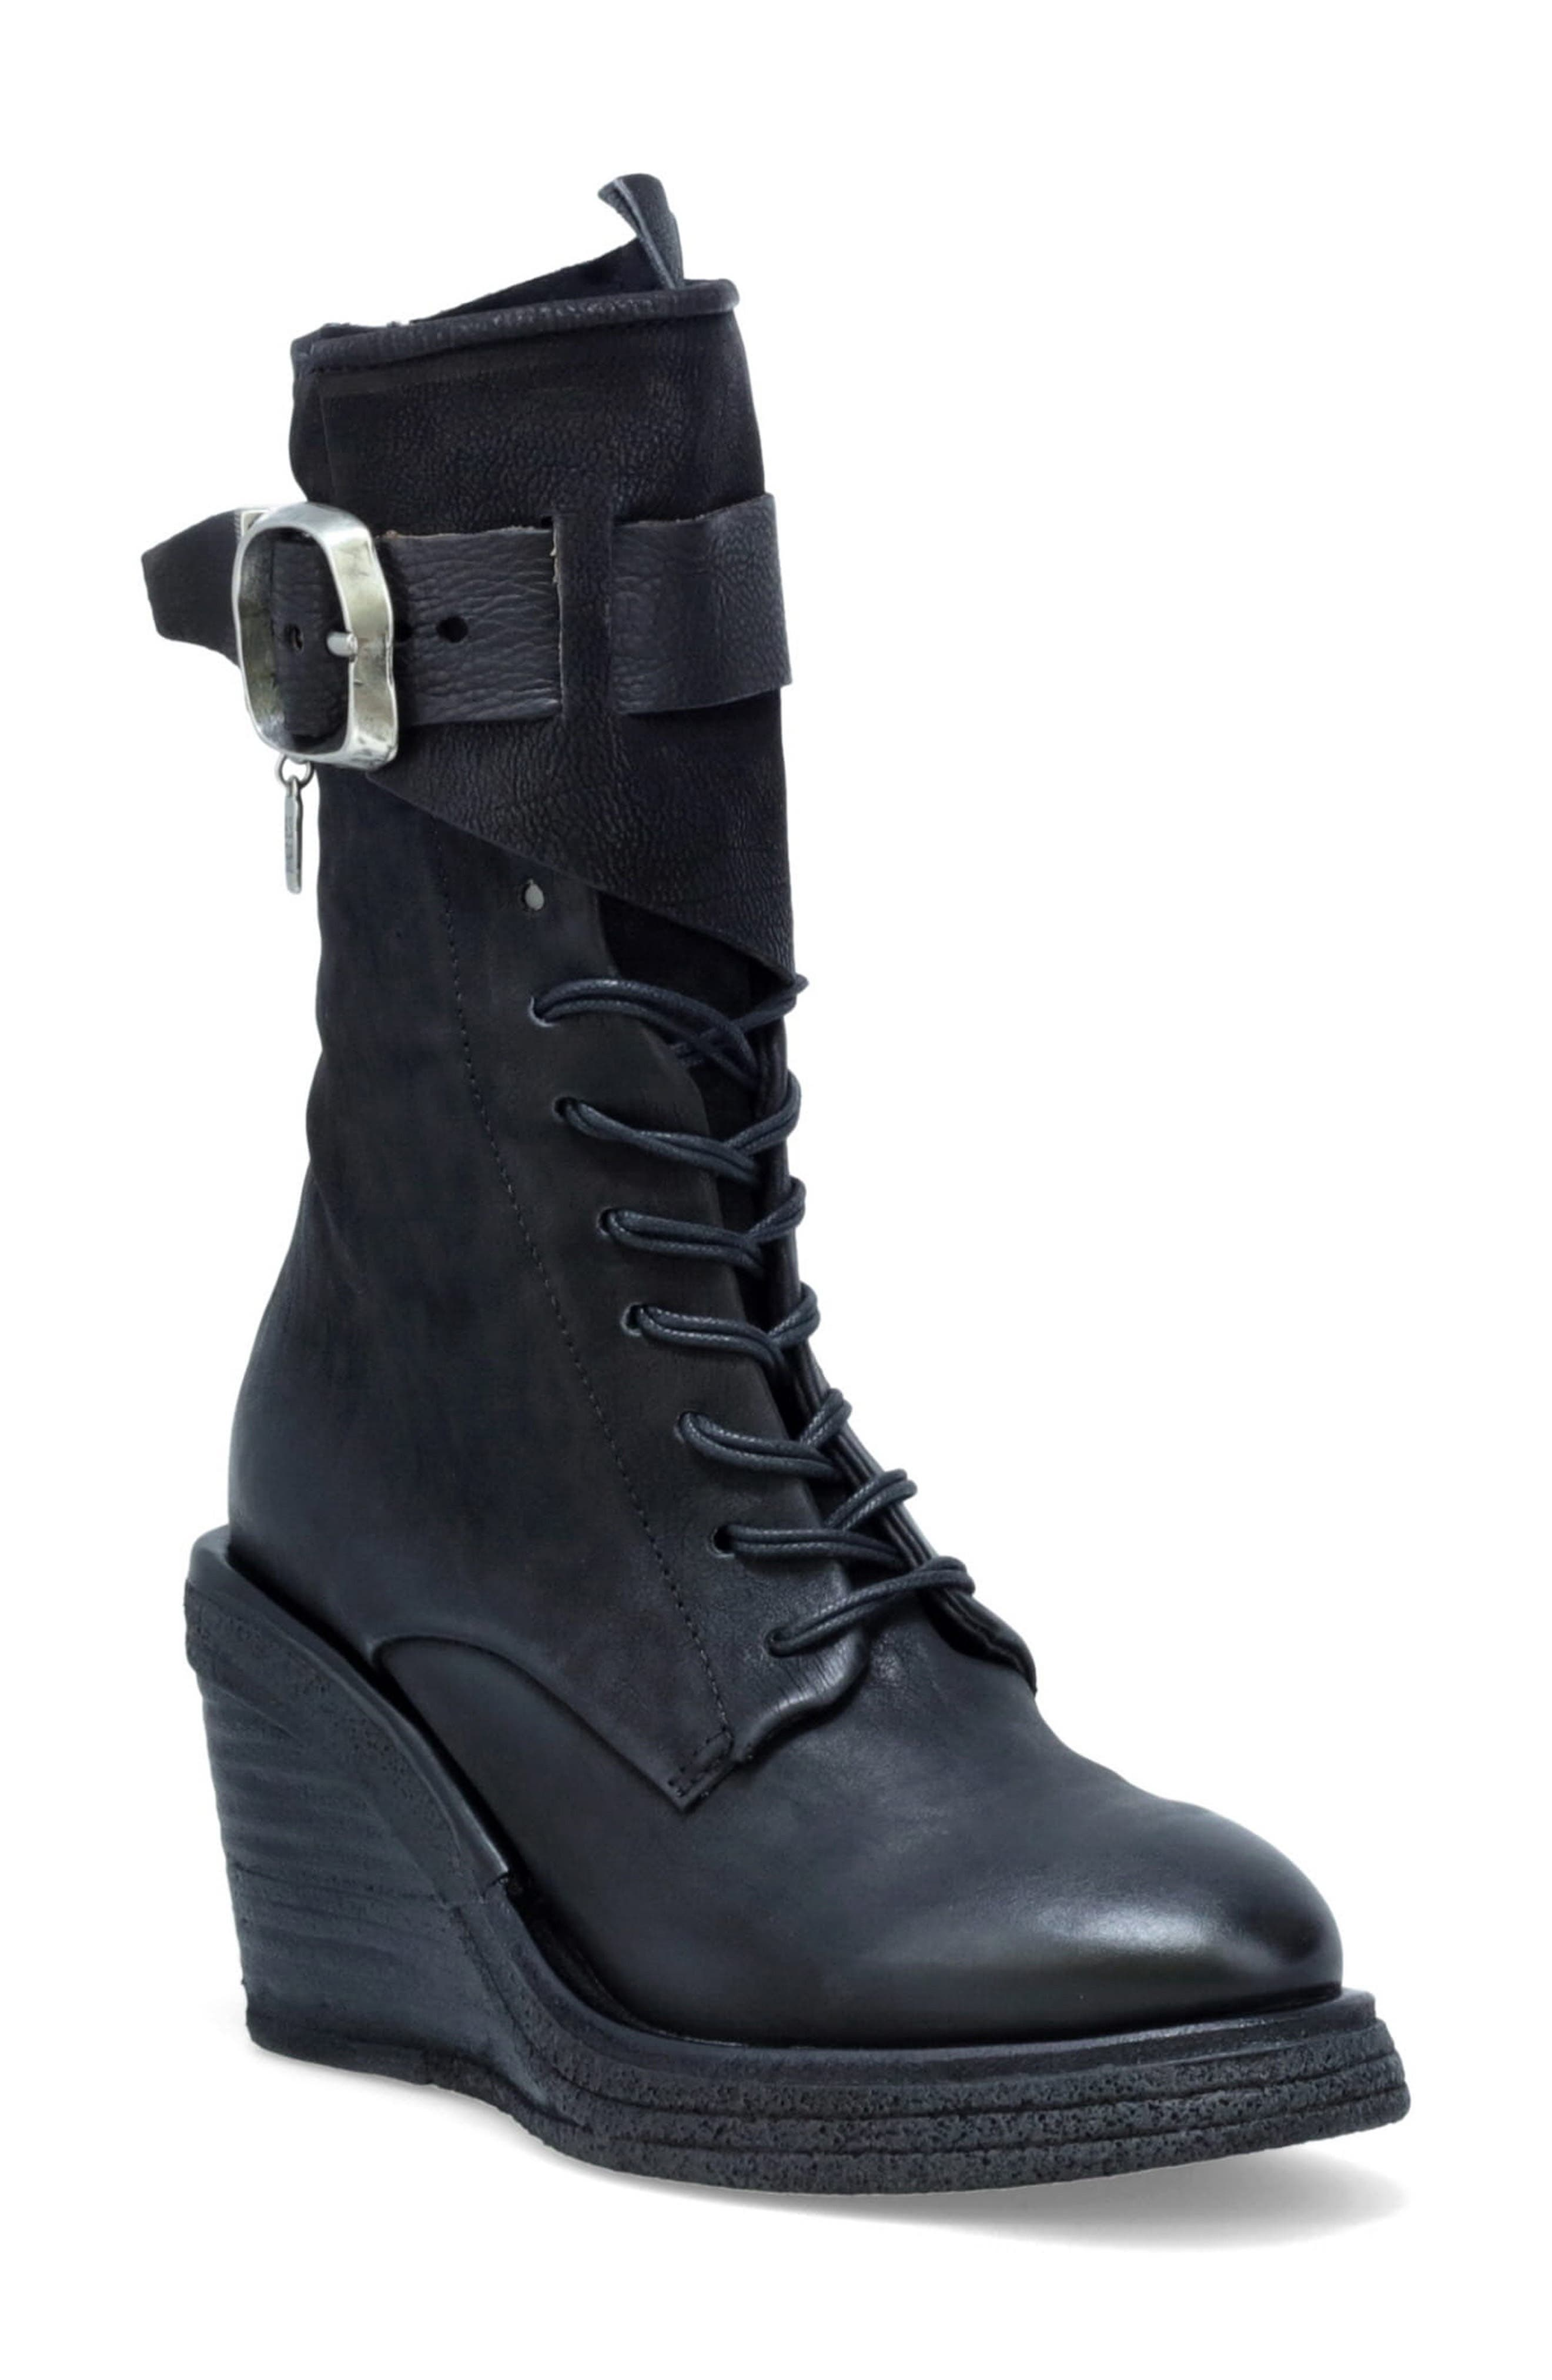 Women's A.s.98 Thatcher Lace-Up Wedge Bootie